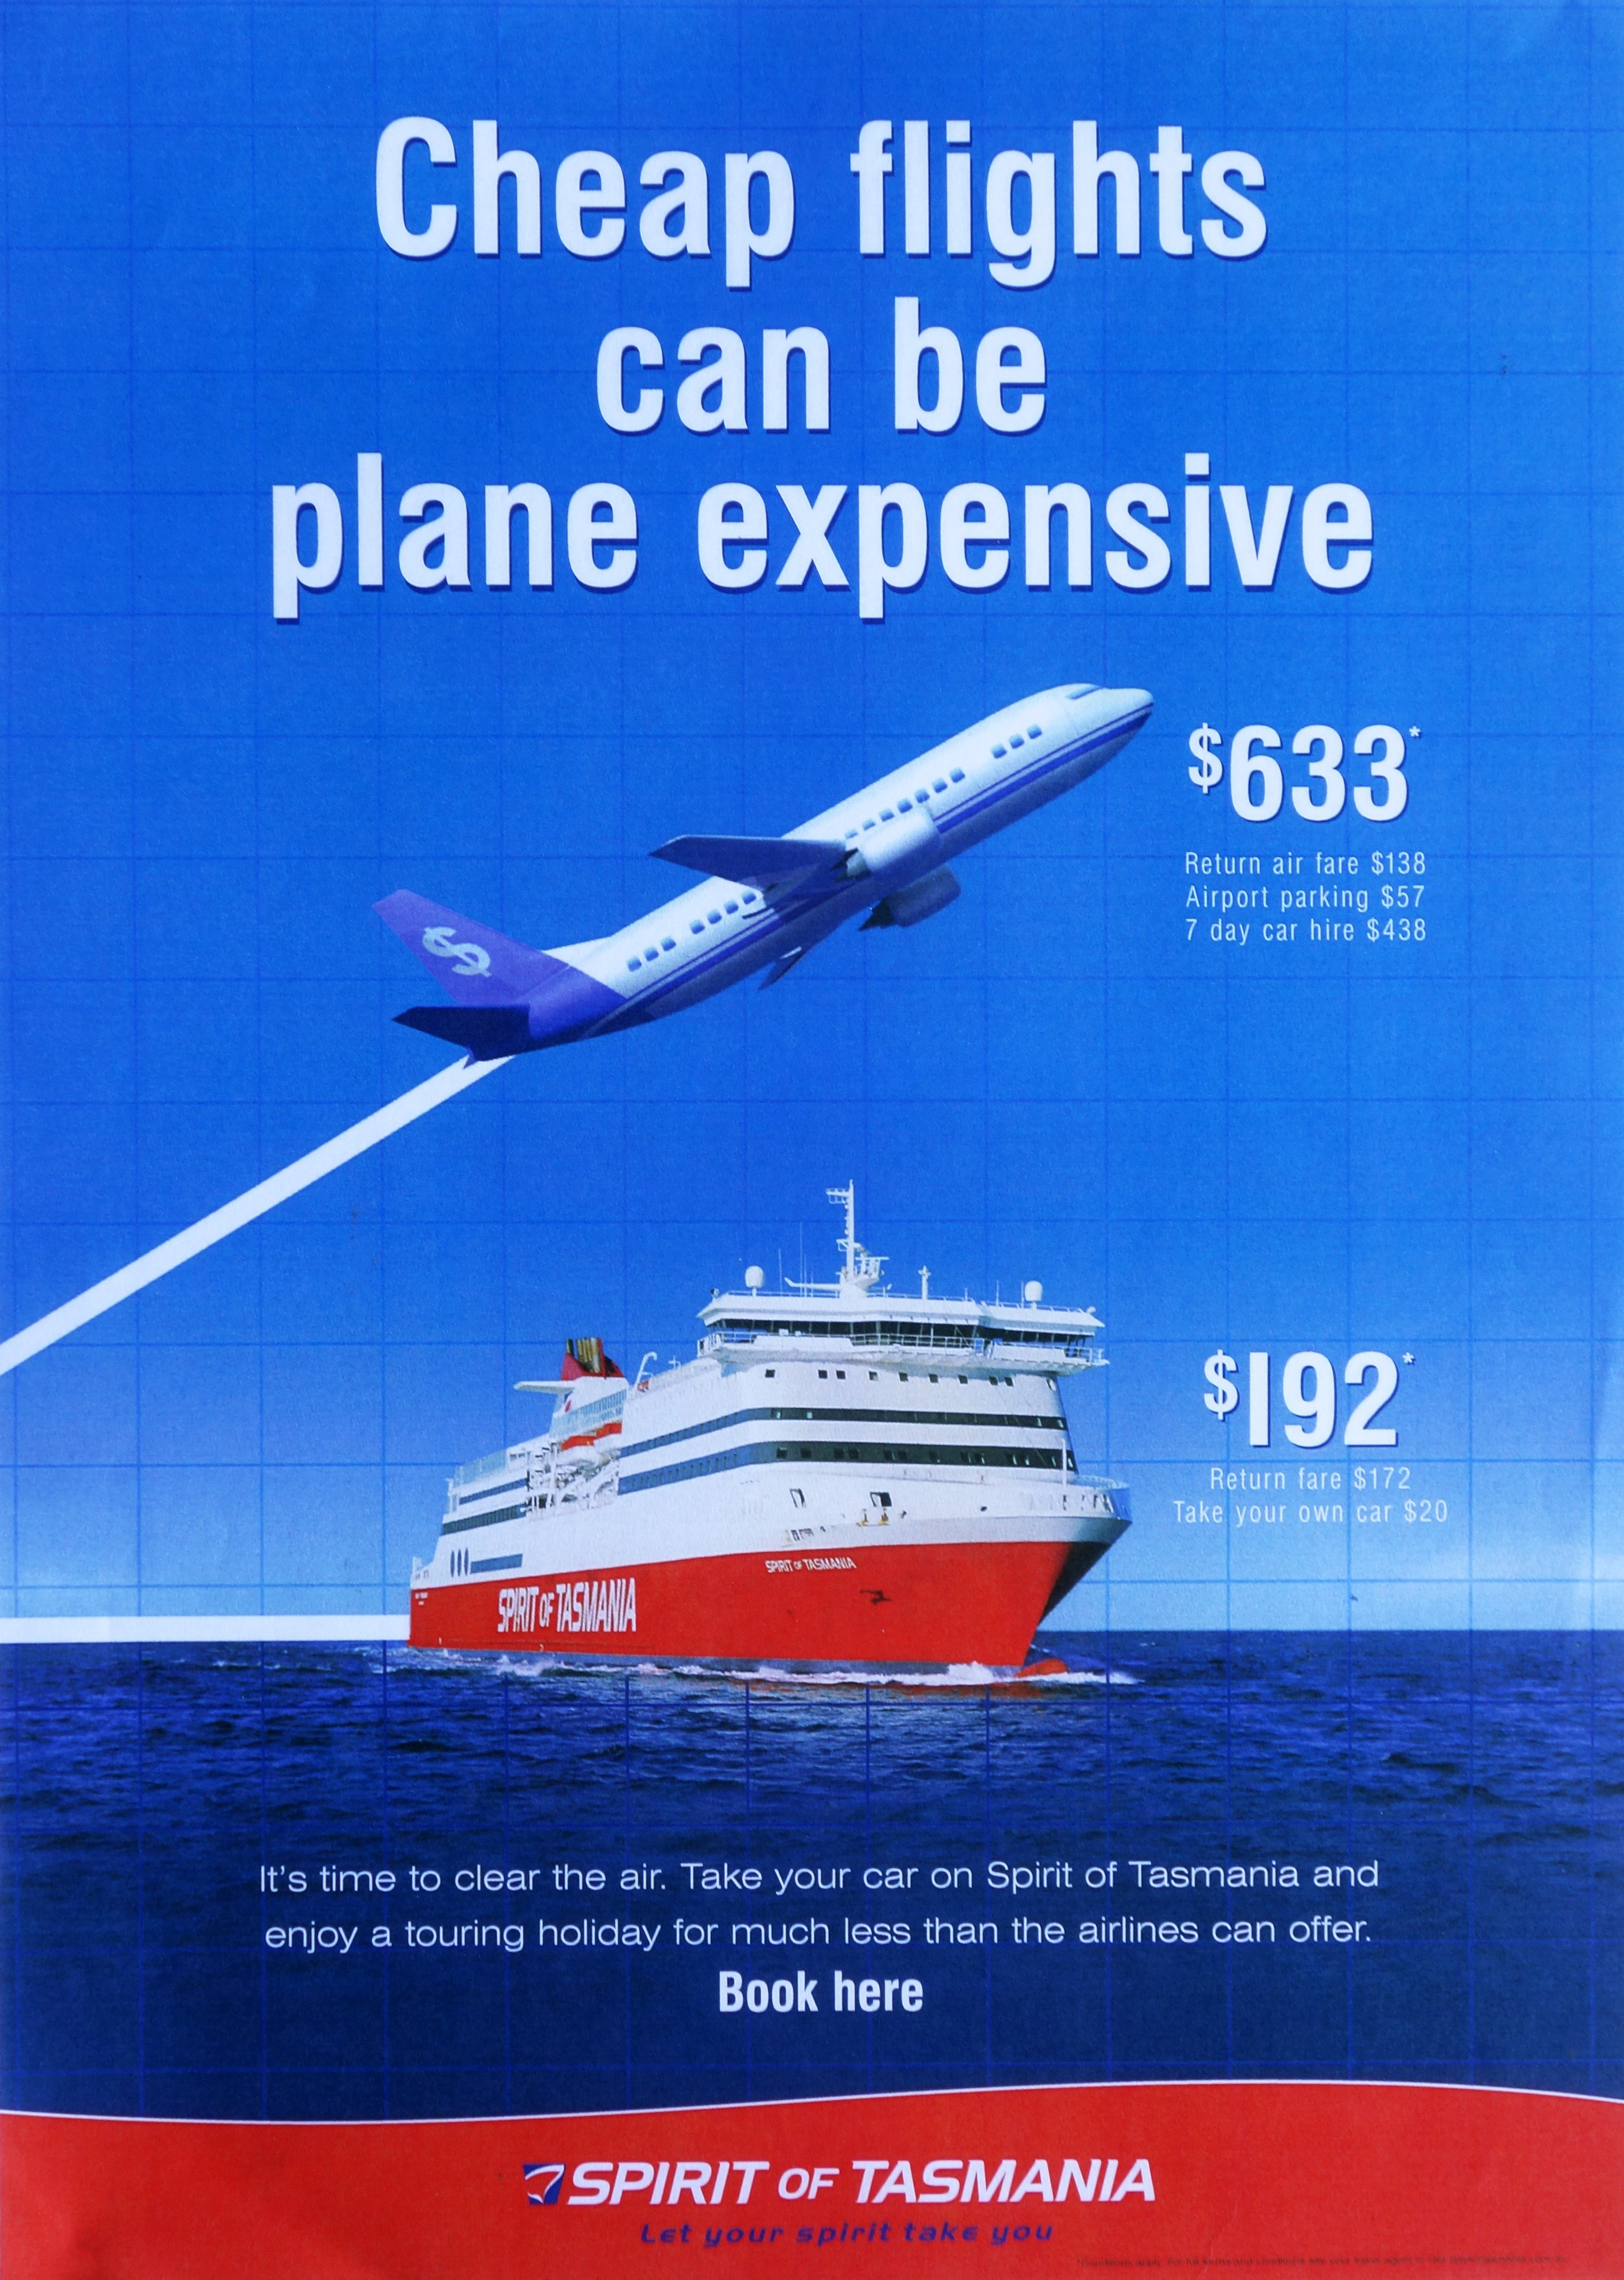 Plane-expensive-poster